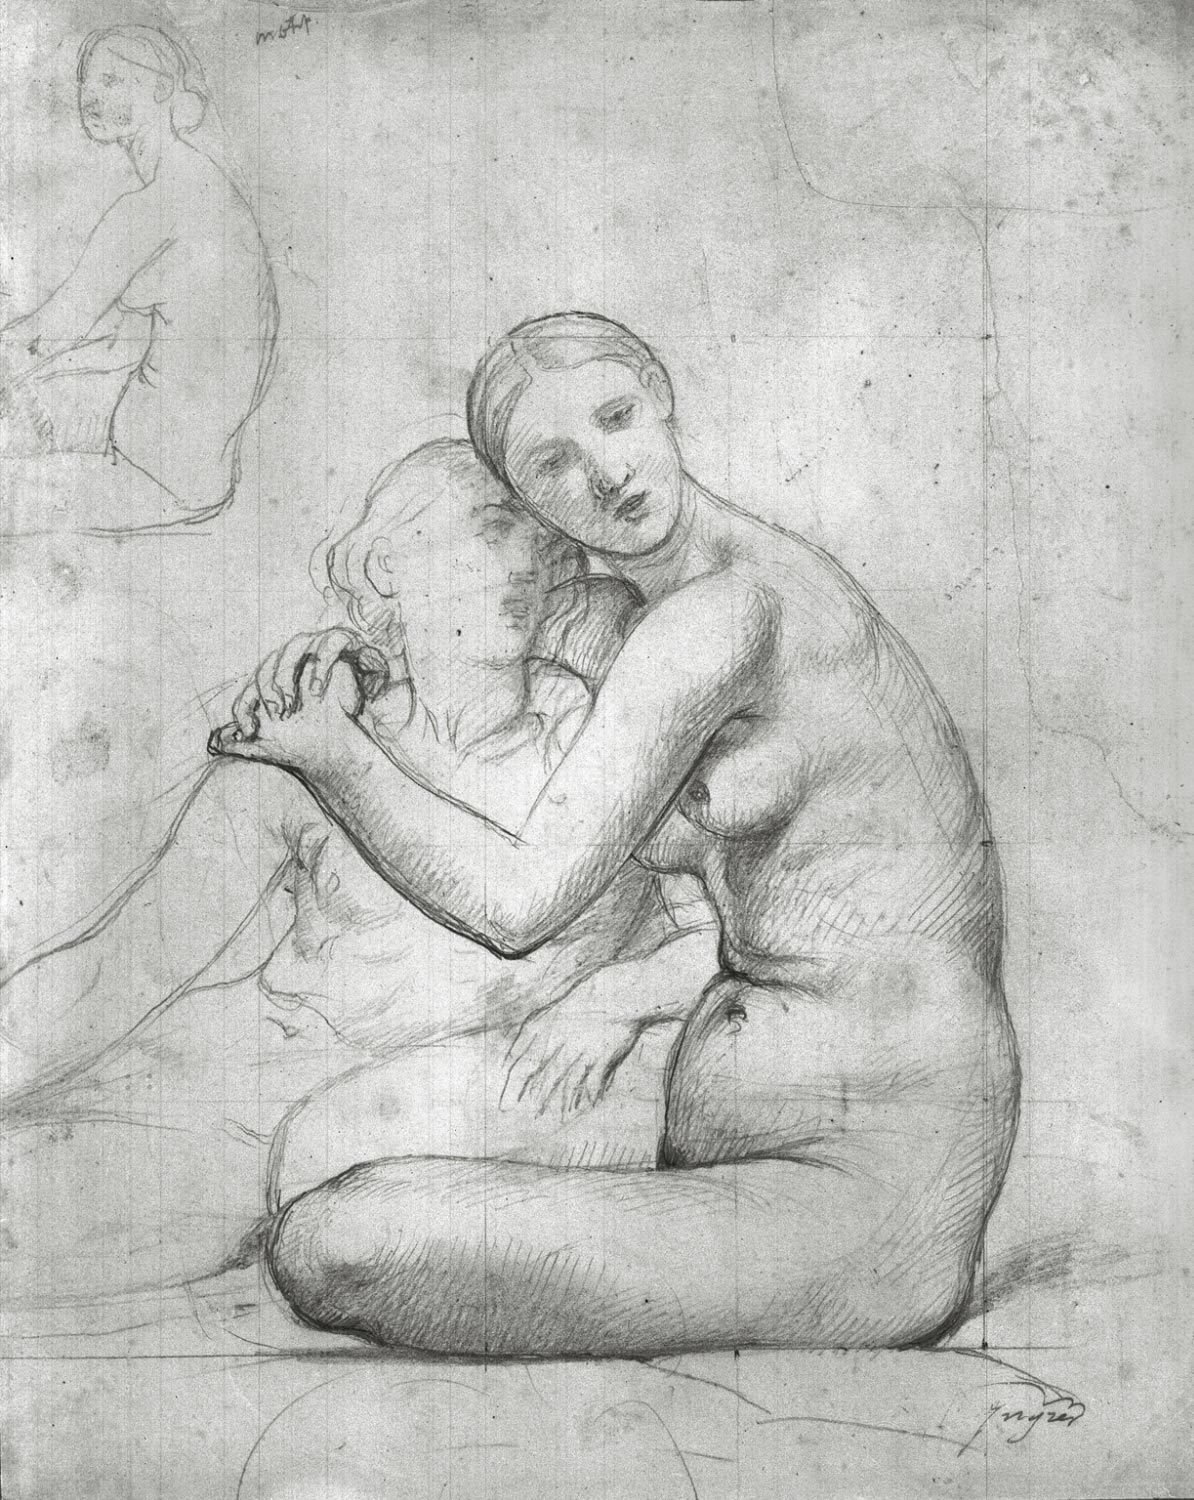 Study for the mural